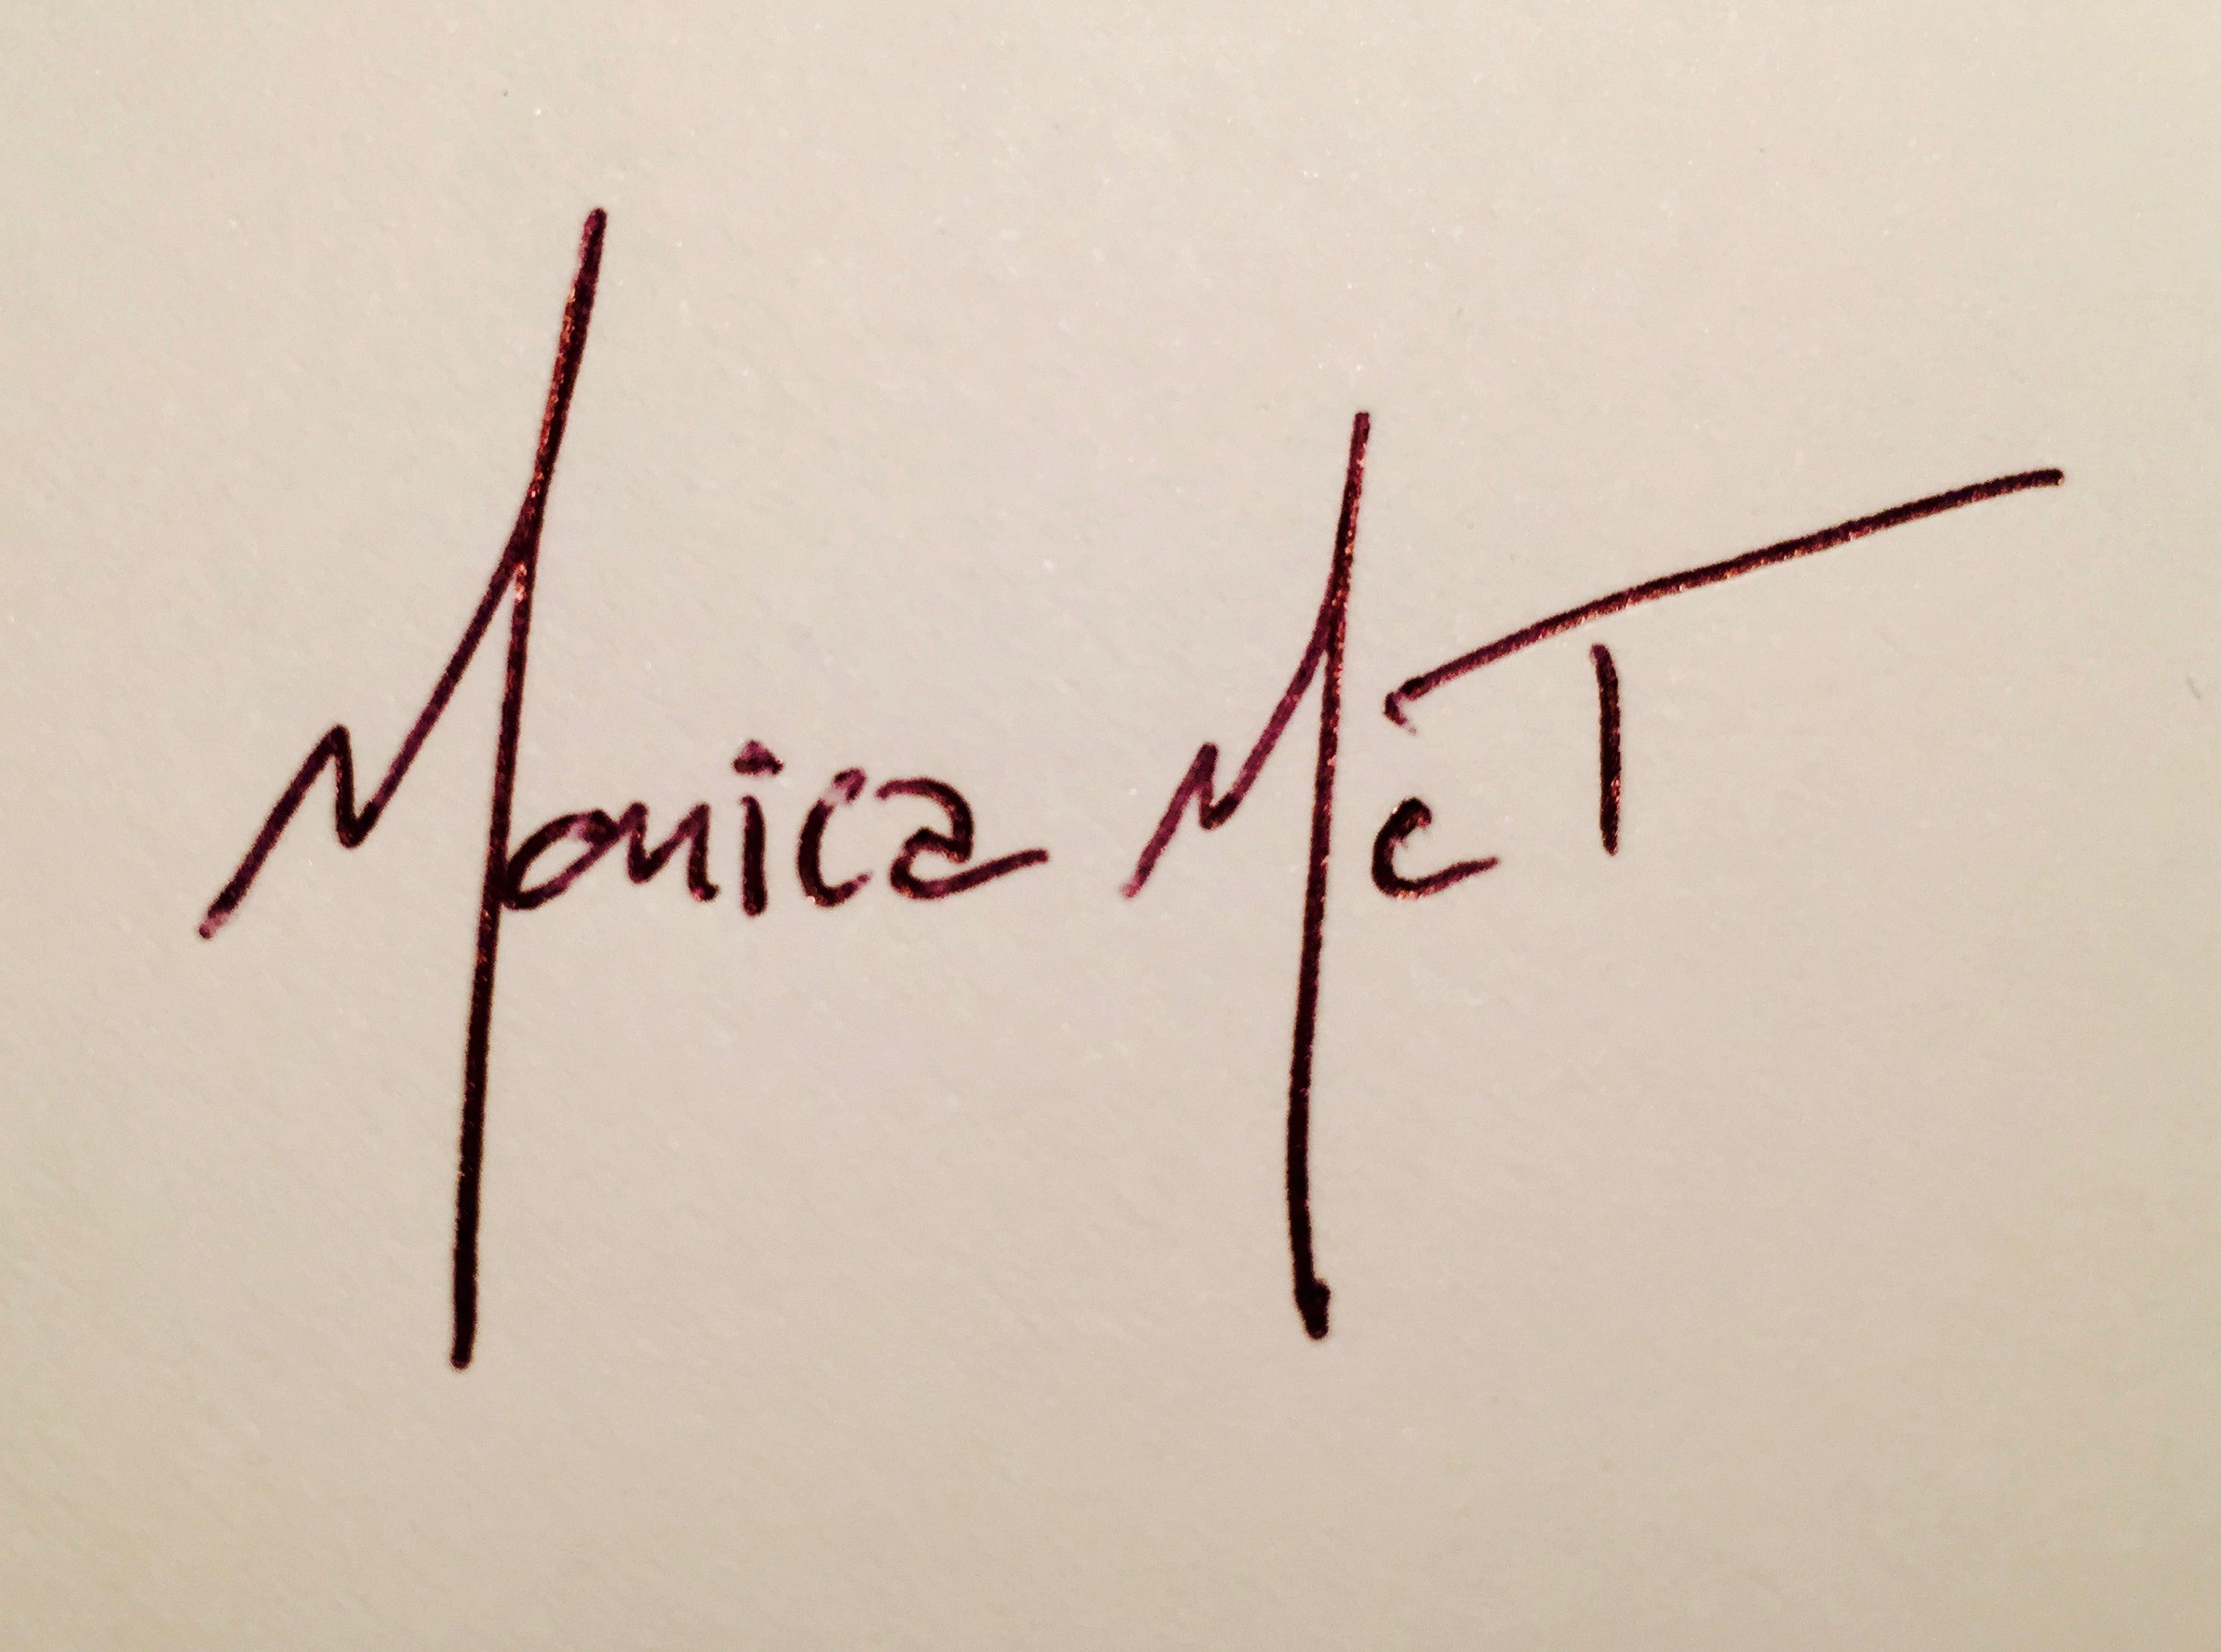 Monica McTaggart's Signature